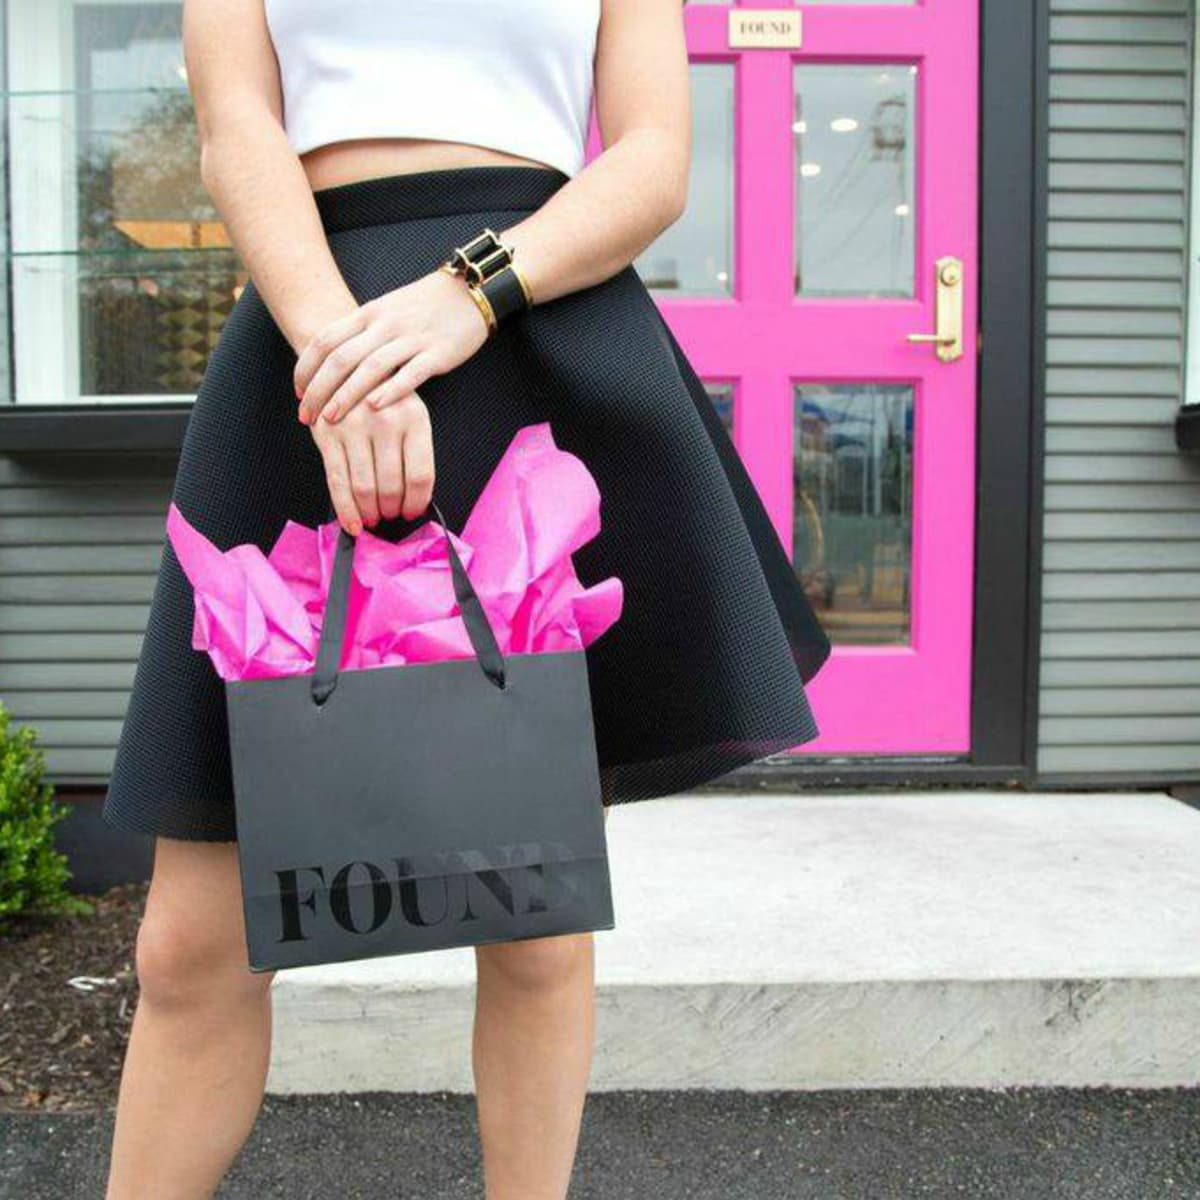 FOUND Austin store exterior pink door shopping bag 2015